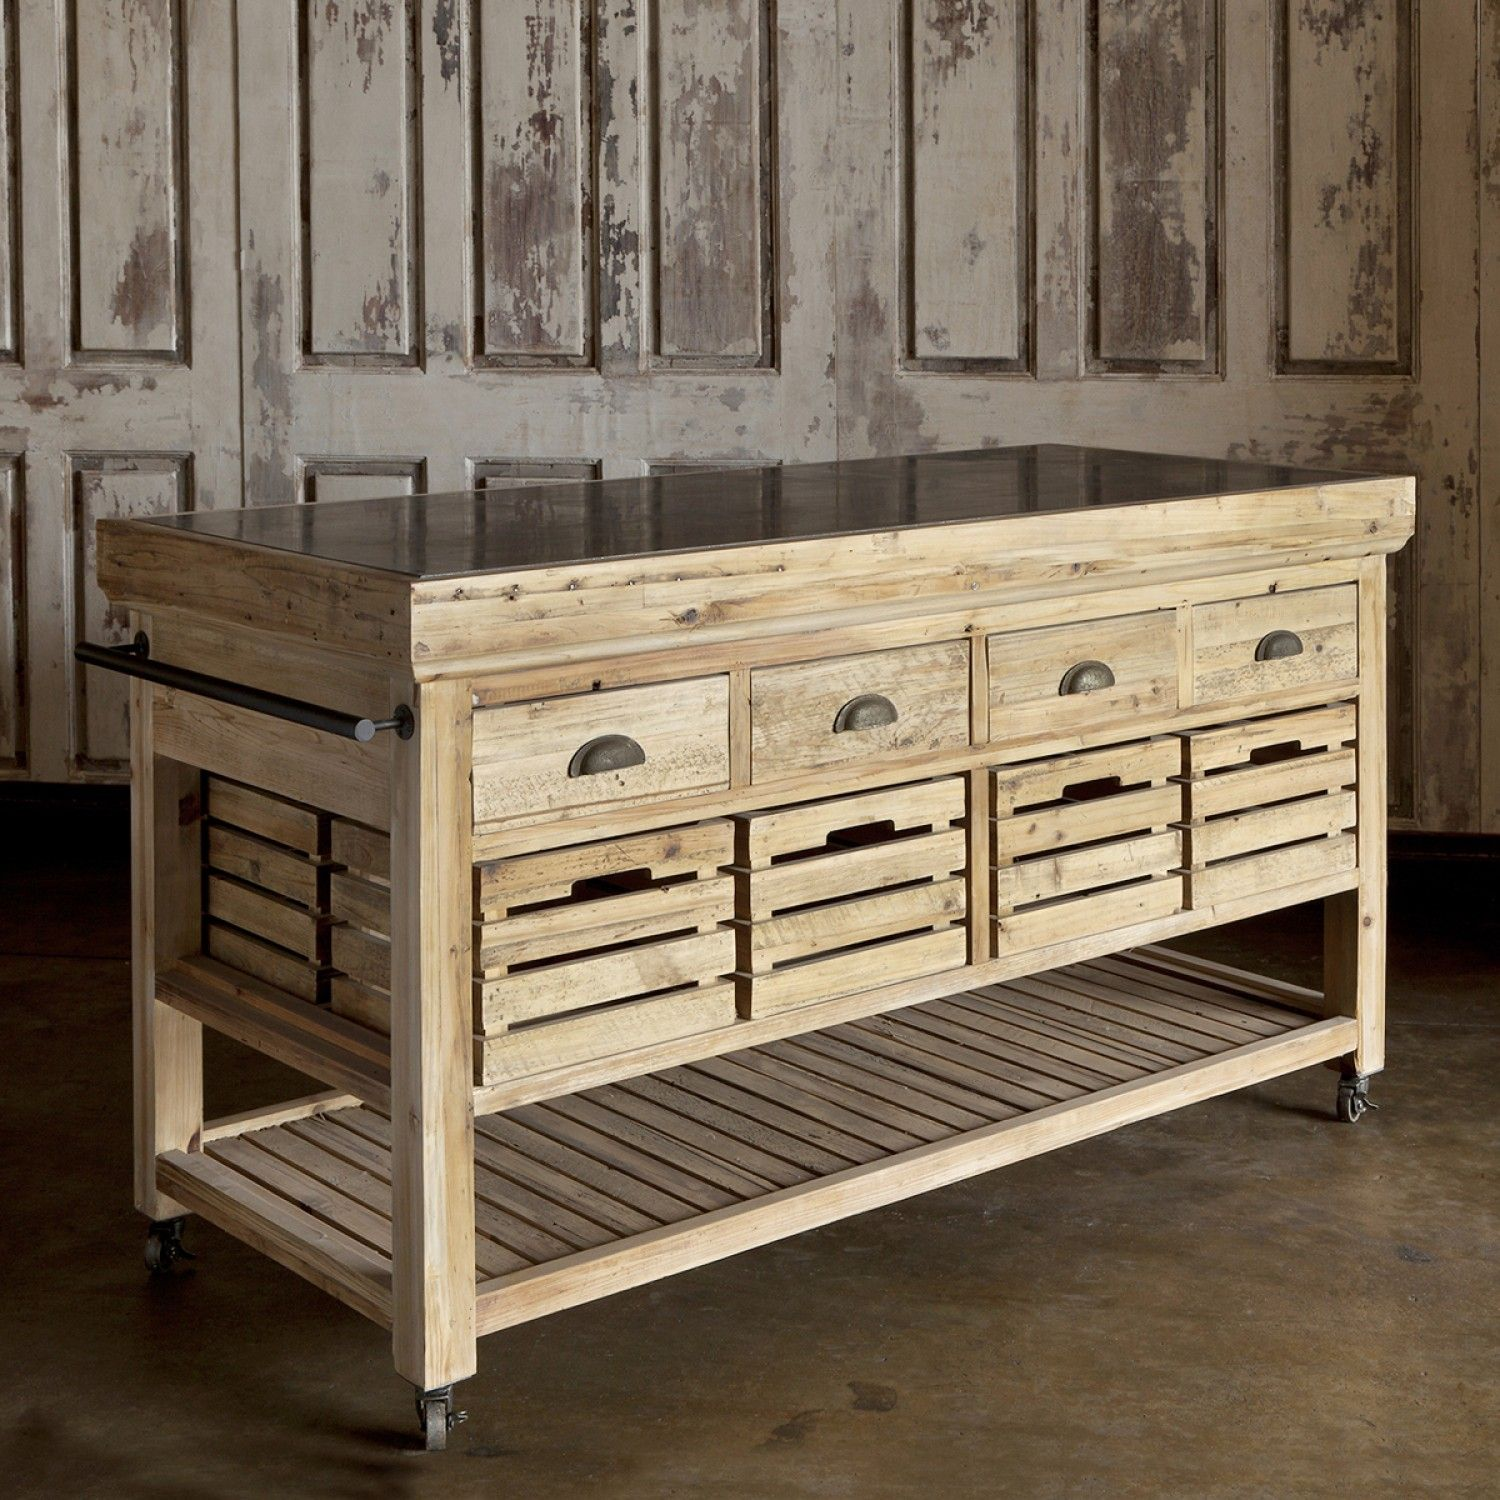 Groland Kitchenisland Groland Wood Stenstorp Kitchen Island ...